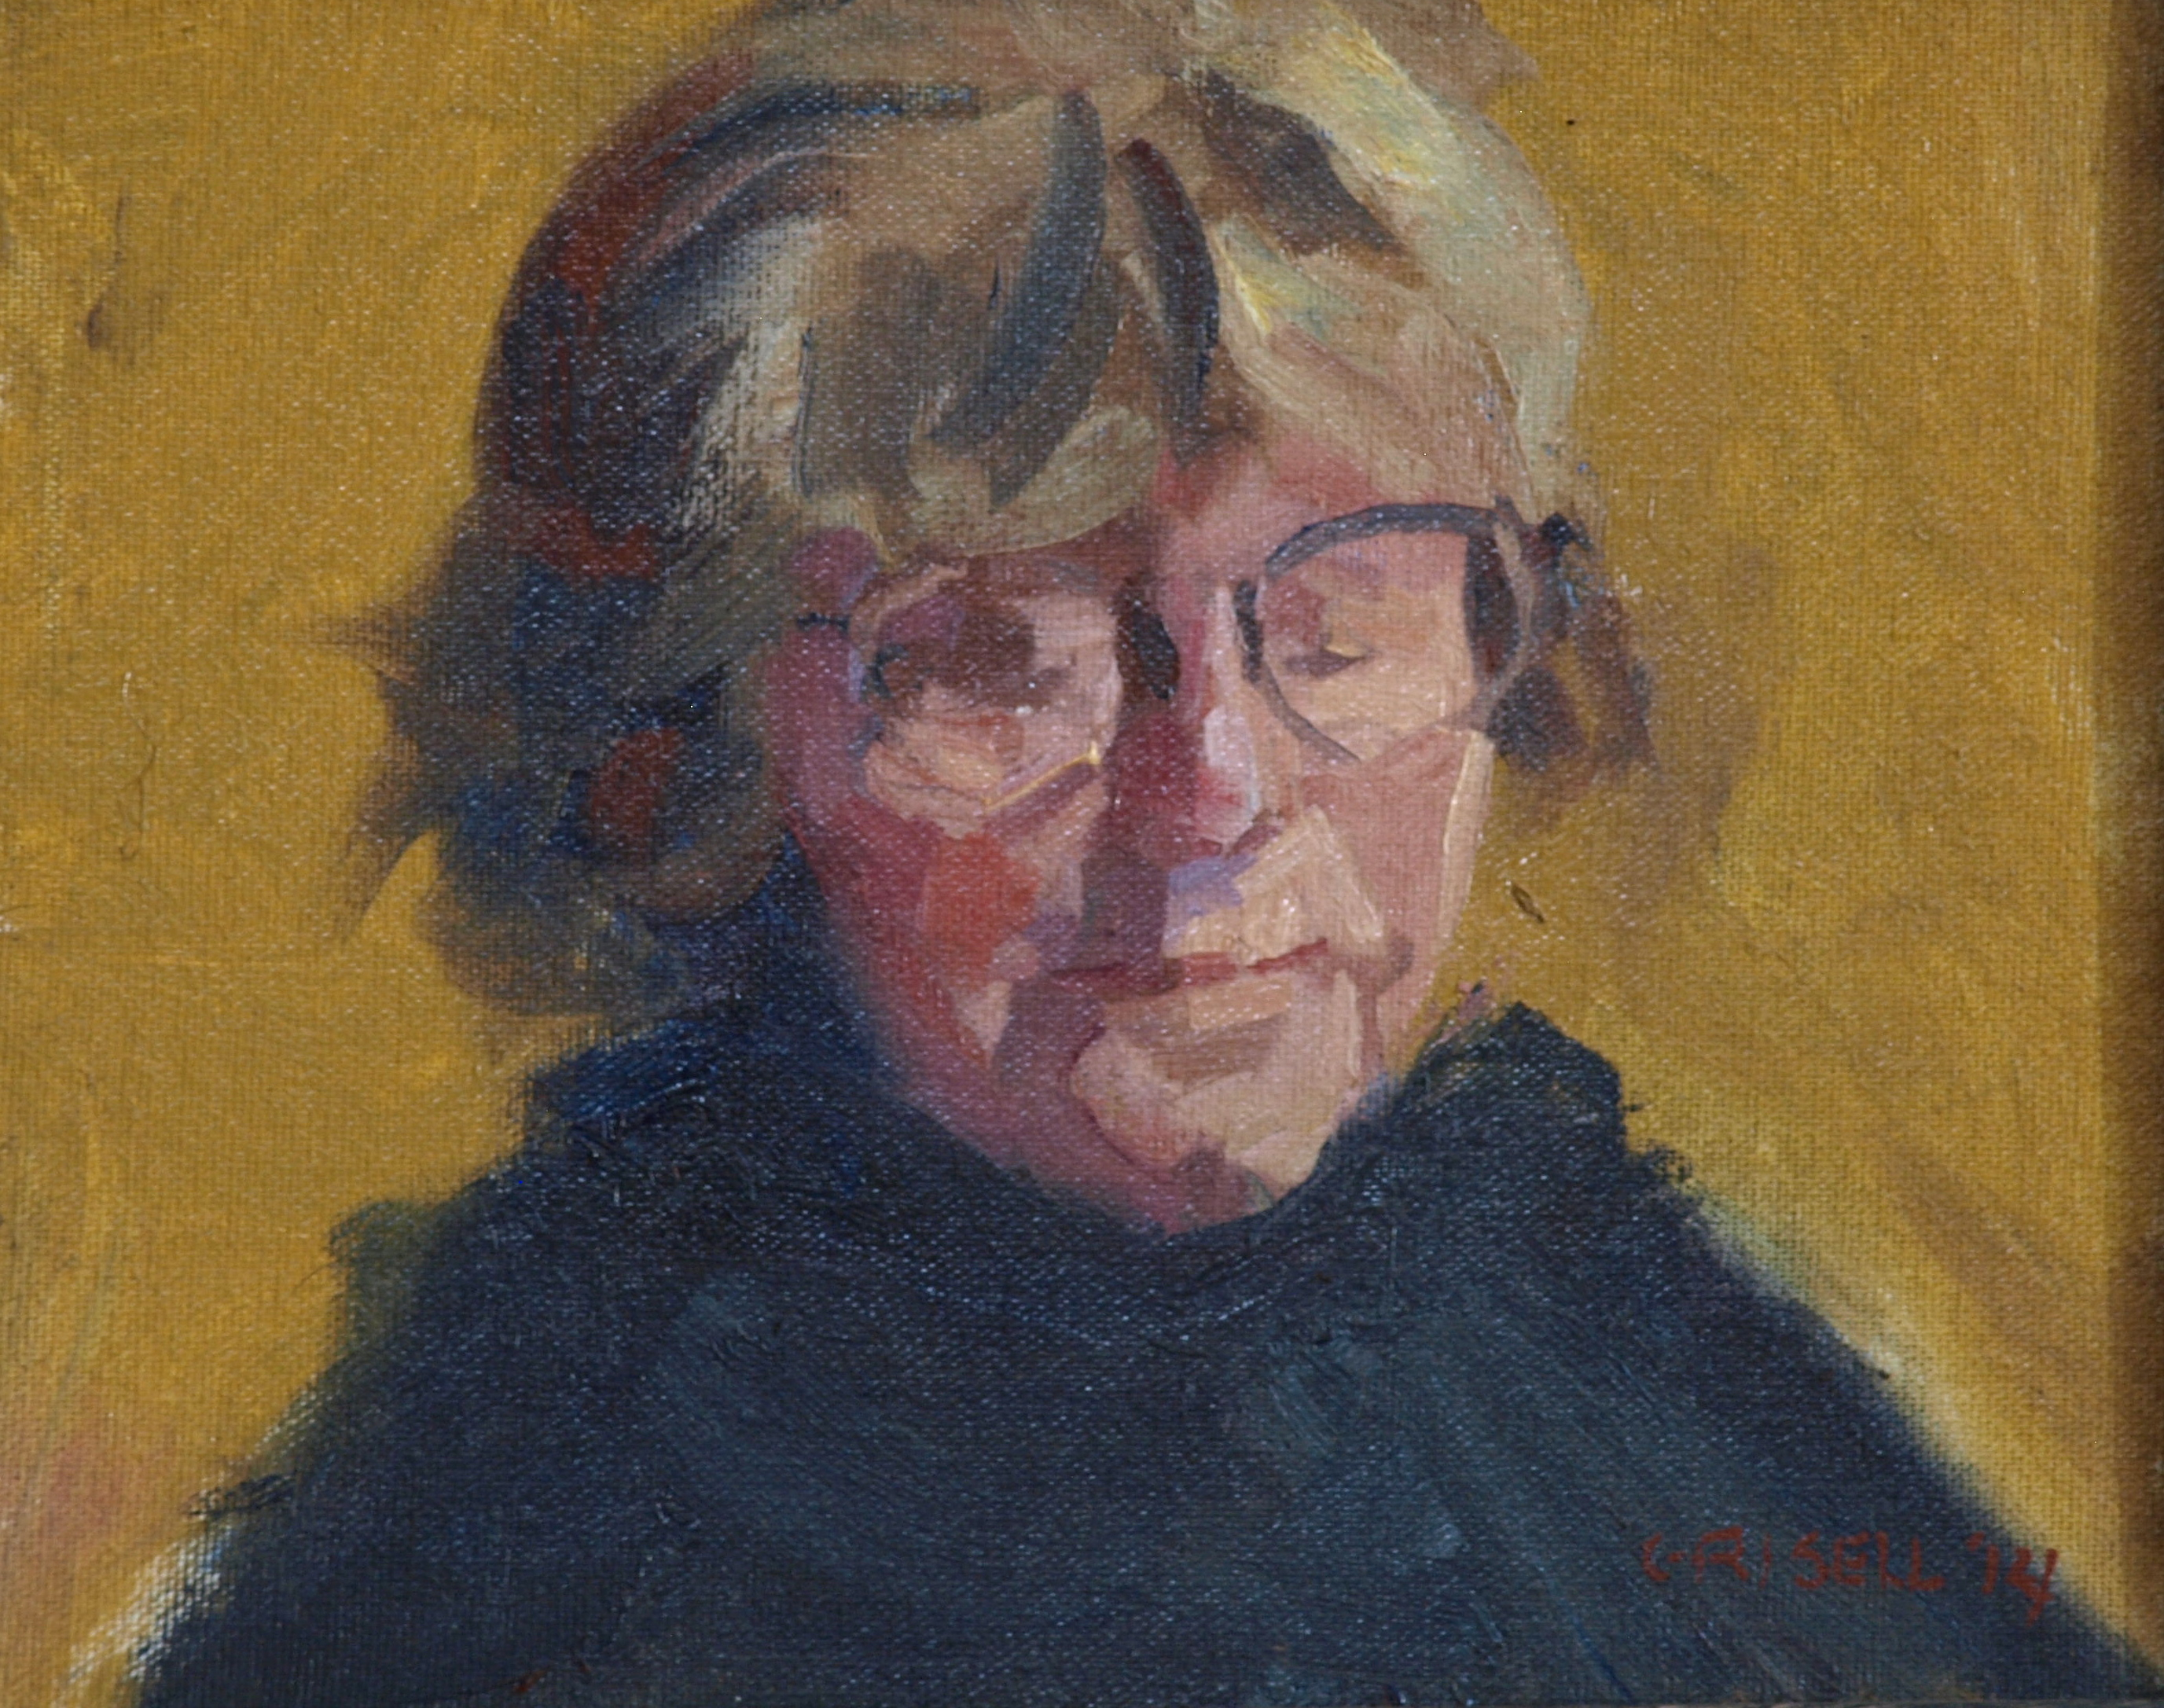 Head Study, Oil on Canvas on Panel, 8 x 10 Inches, by Susan Grisell, $150